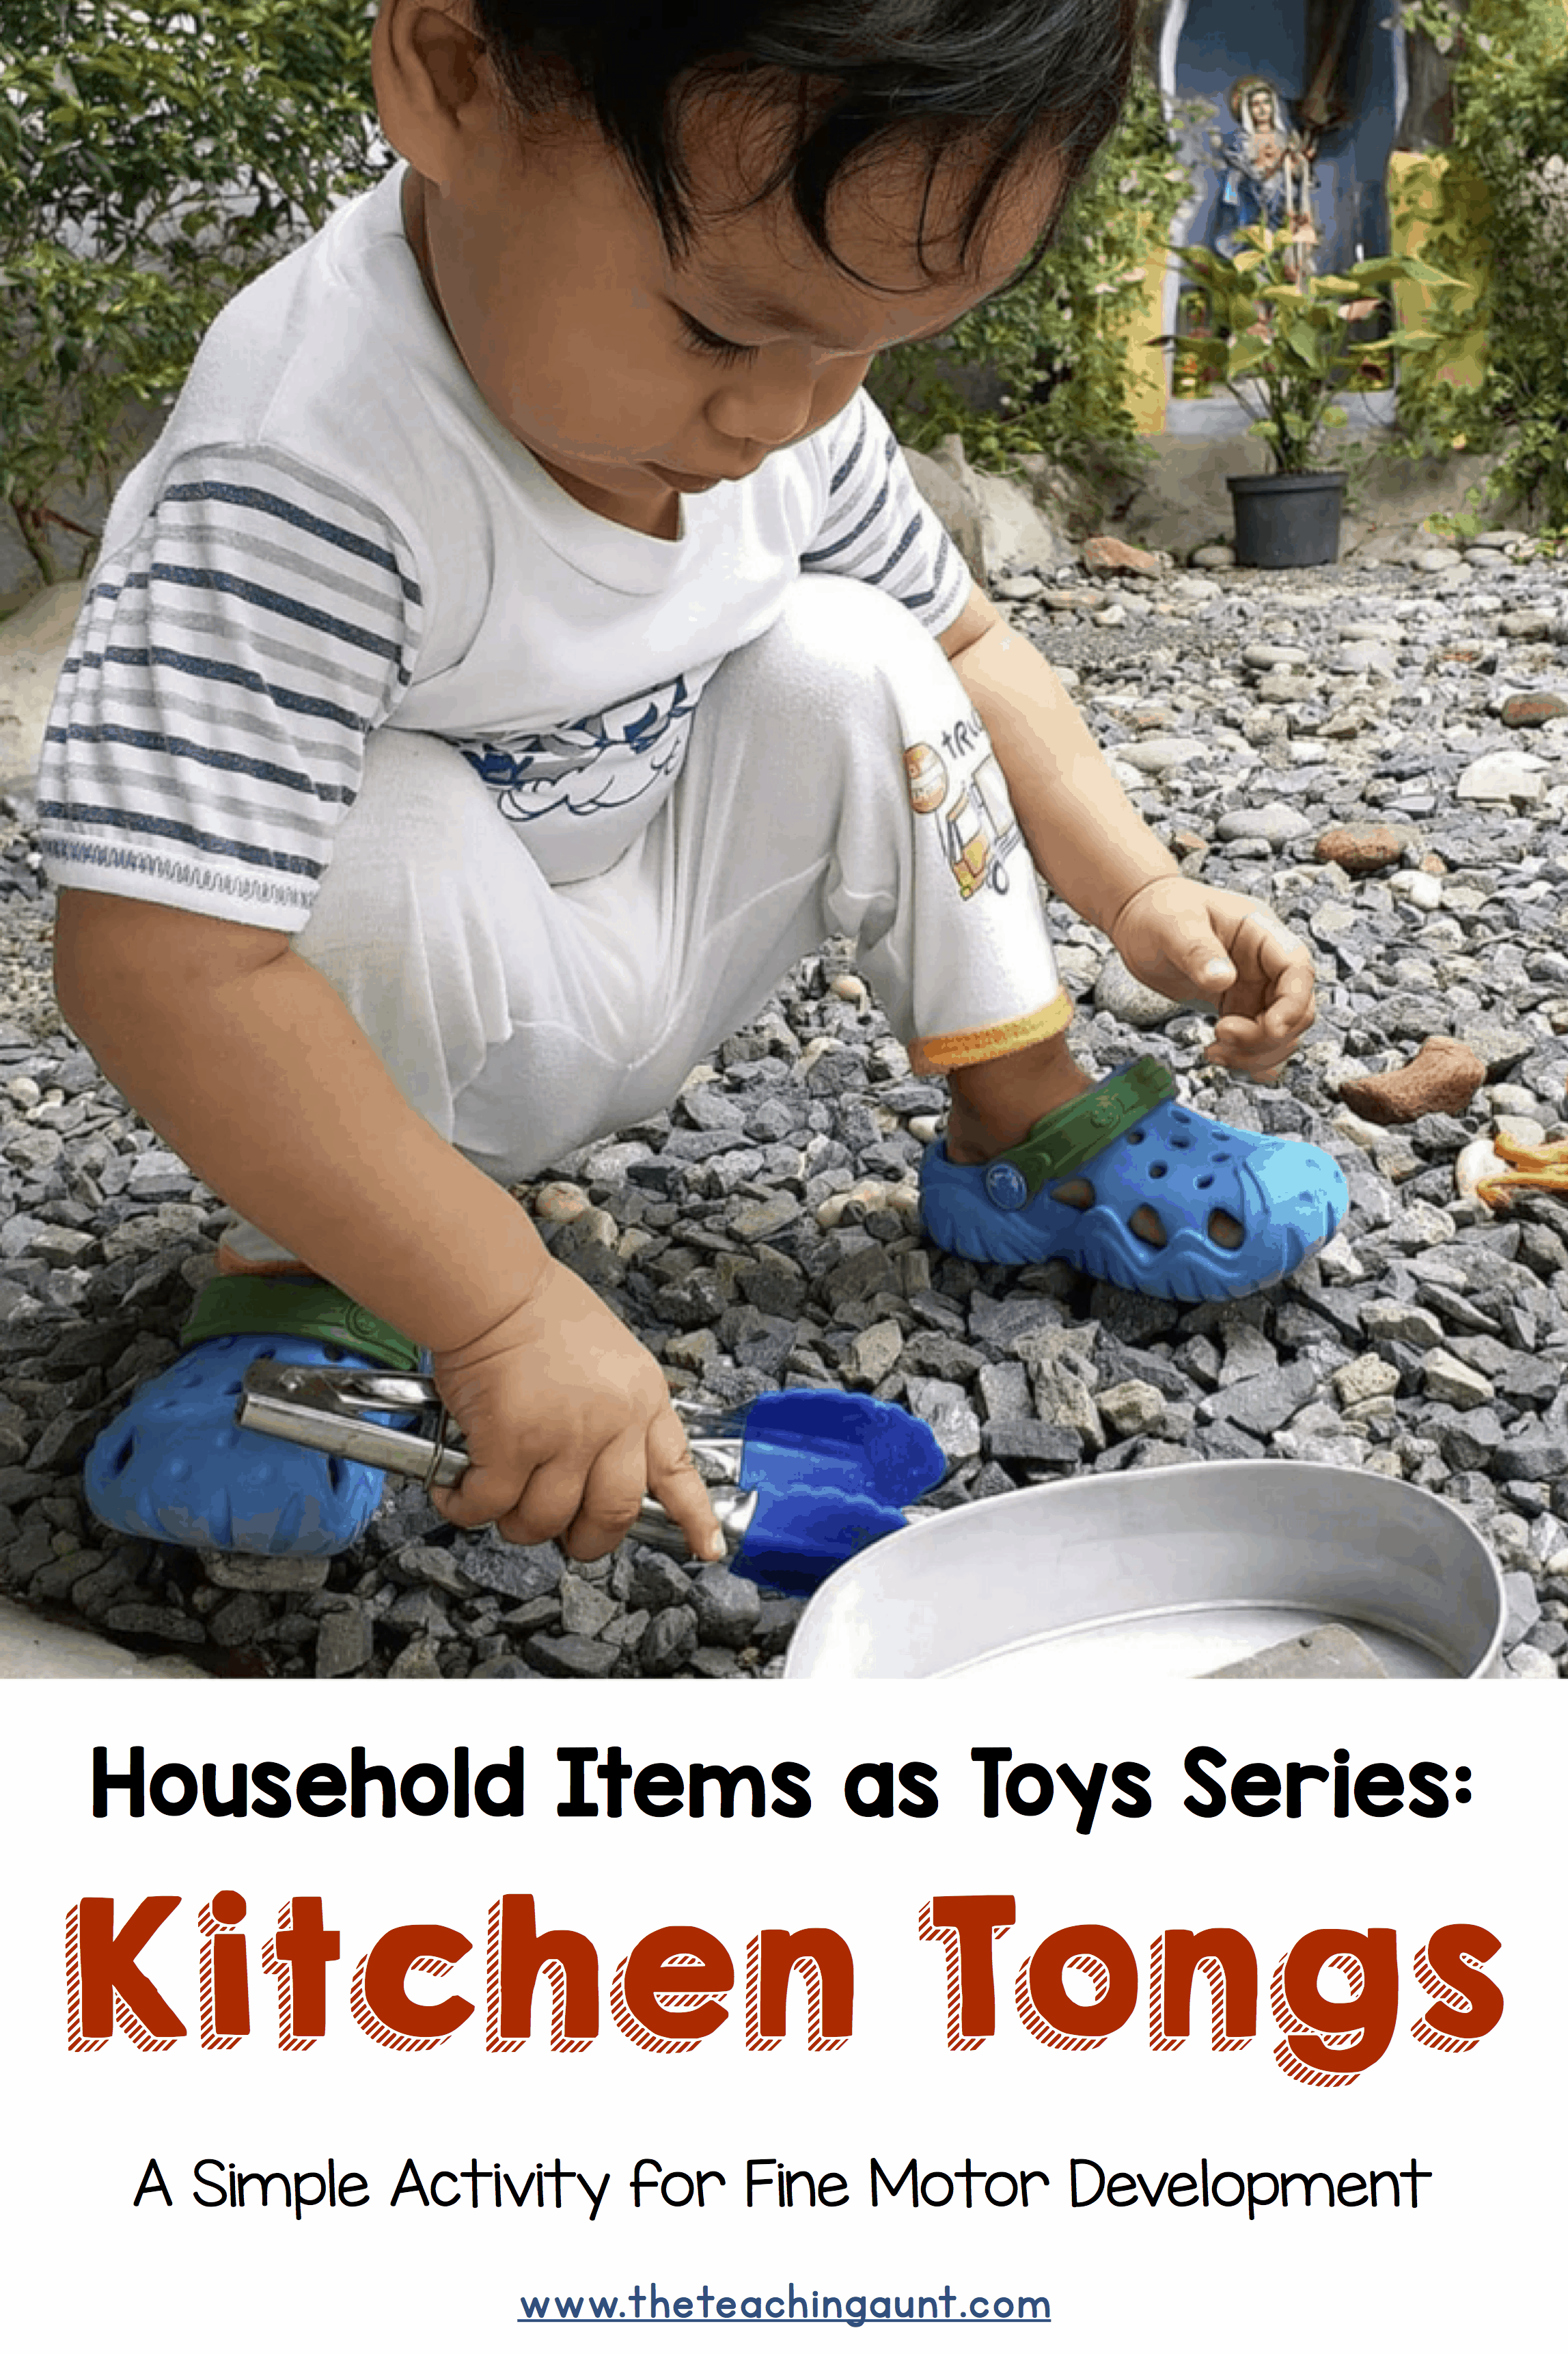 Kitchen Tongs for Toddlers' Fine Motor Development